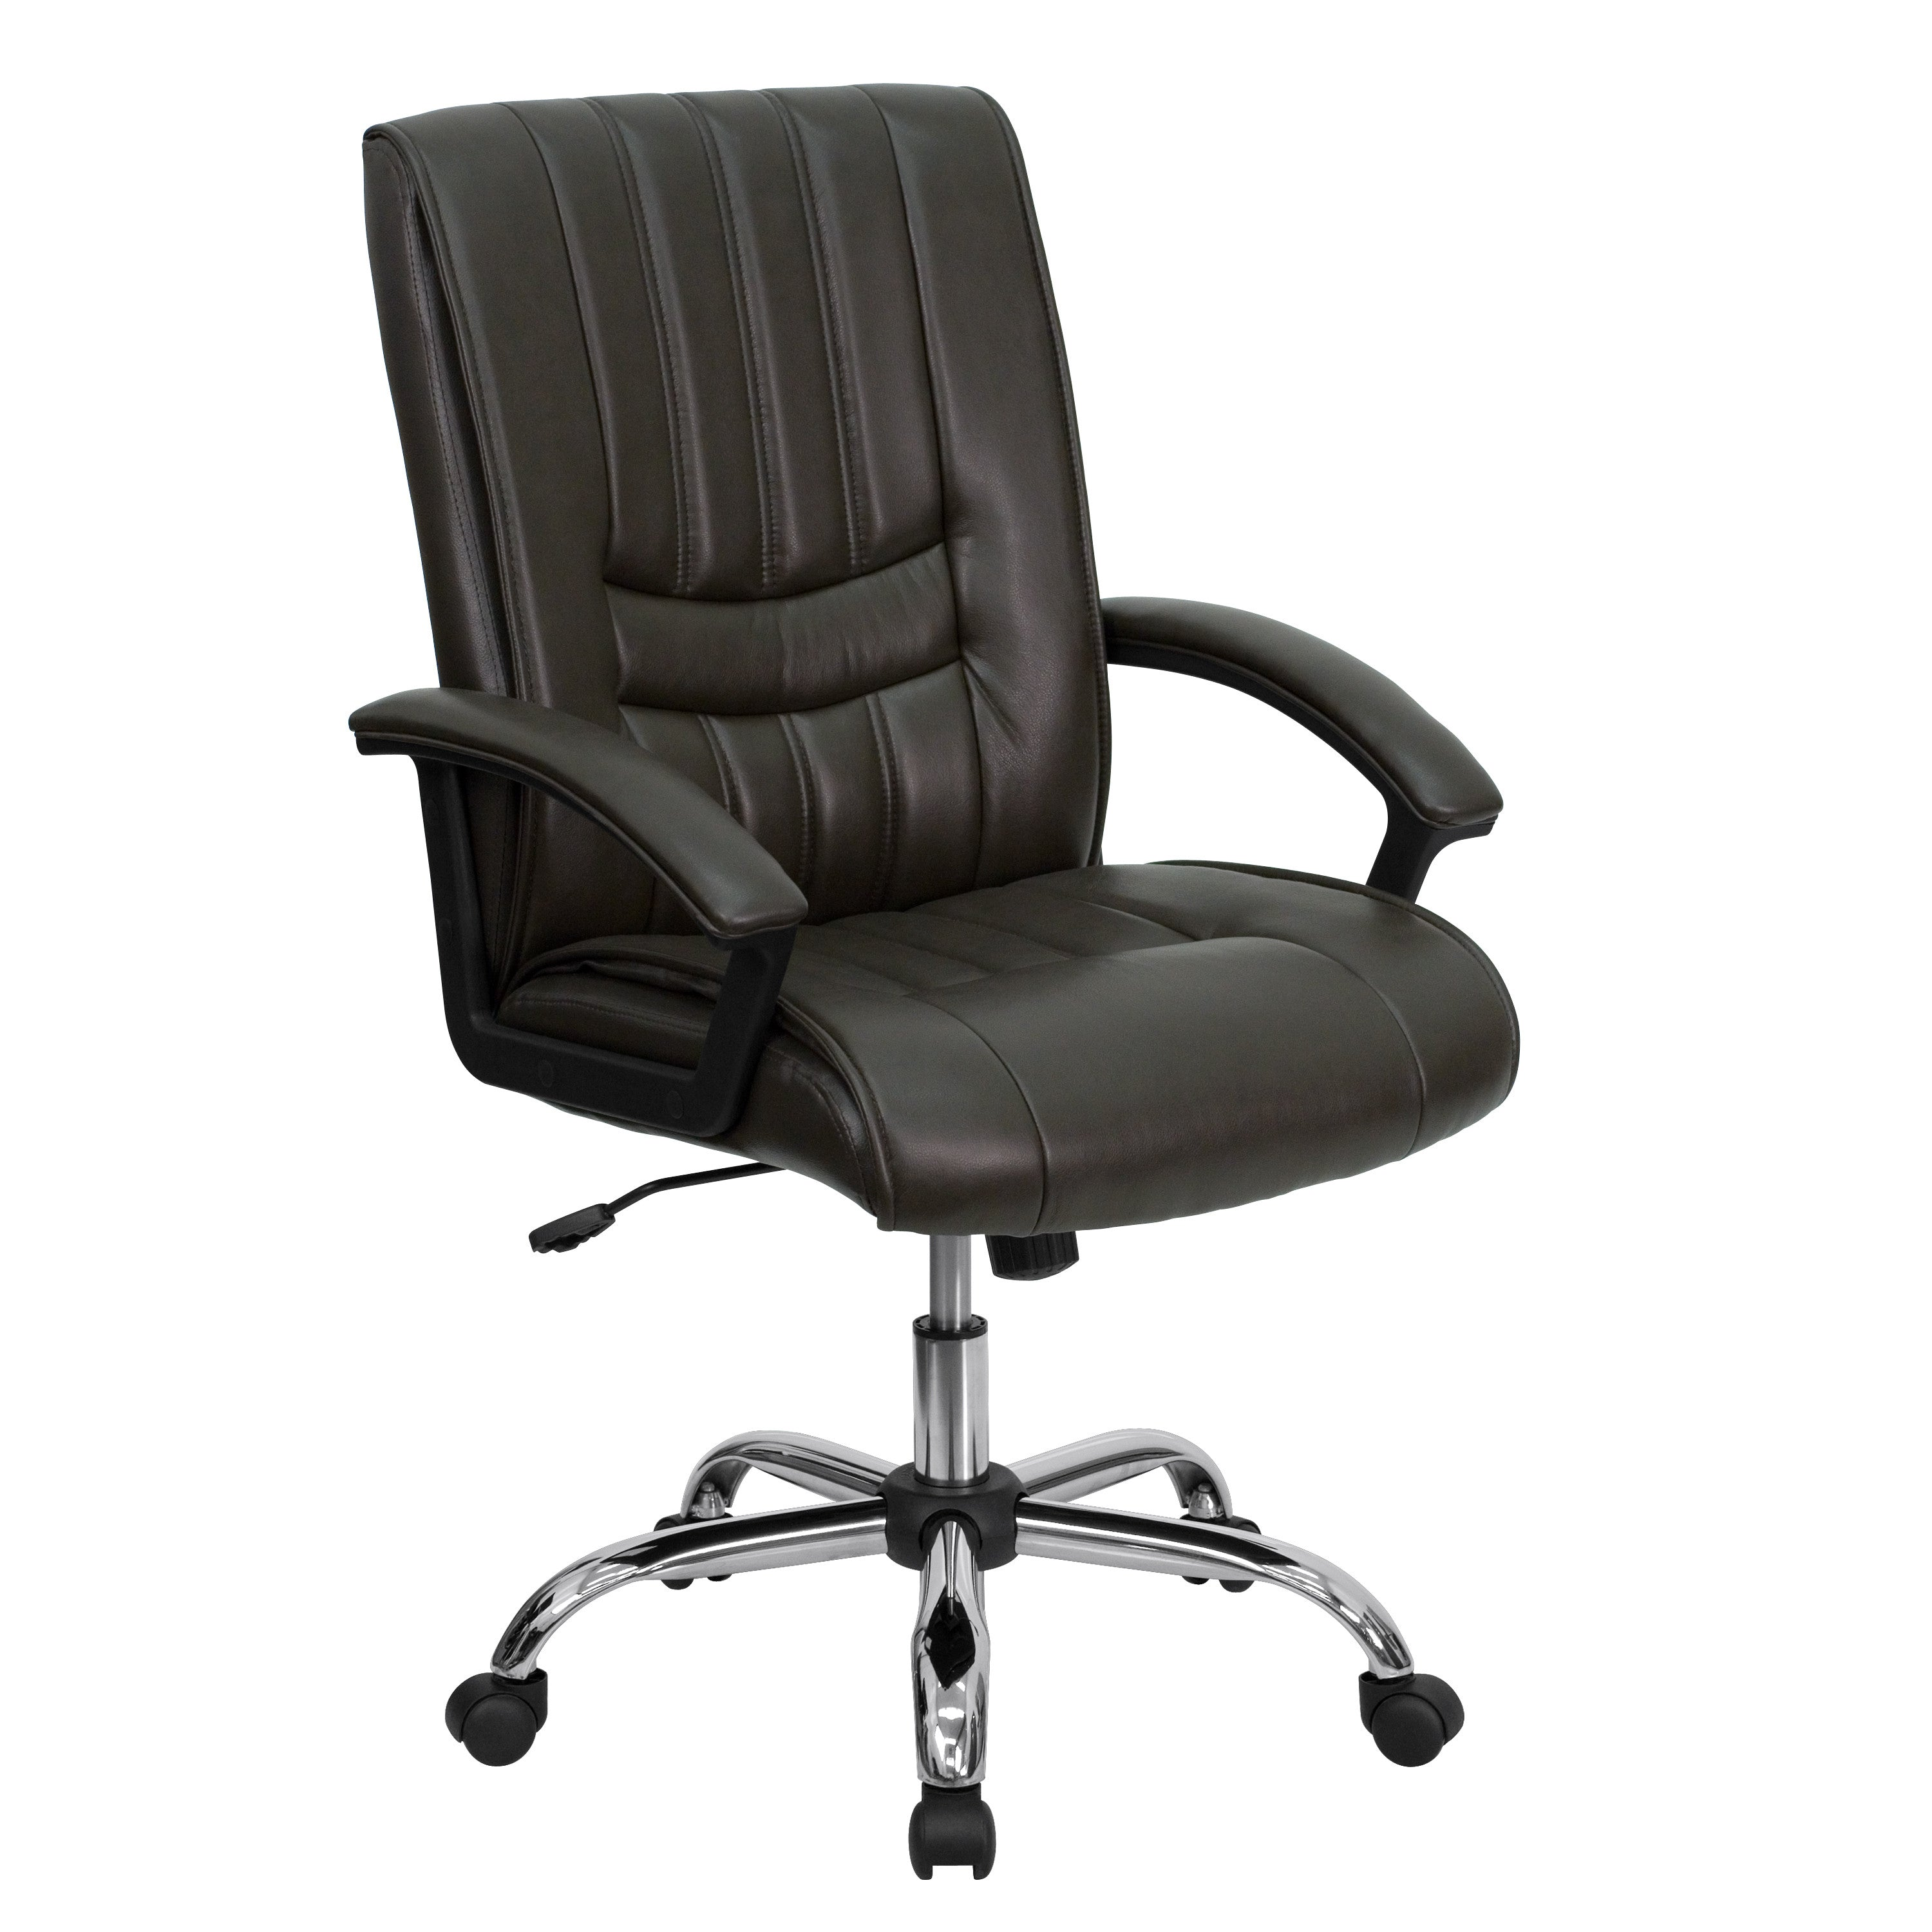 Leather fice Chairs Executive Quality and Bud Friendly Page